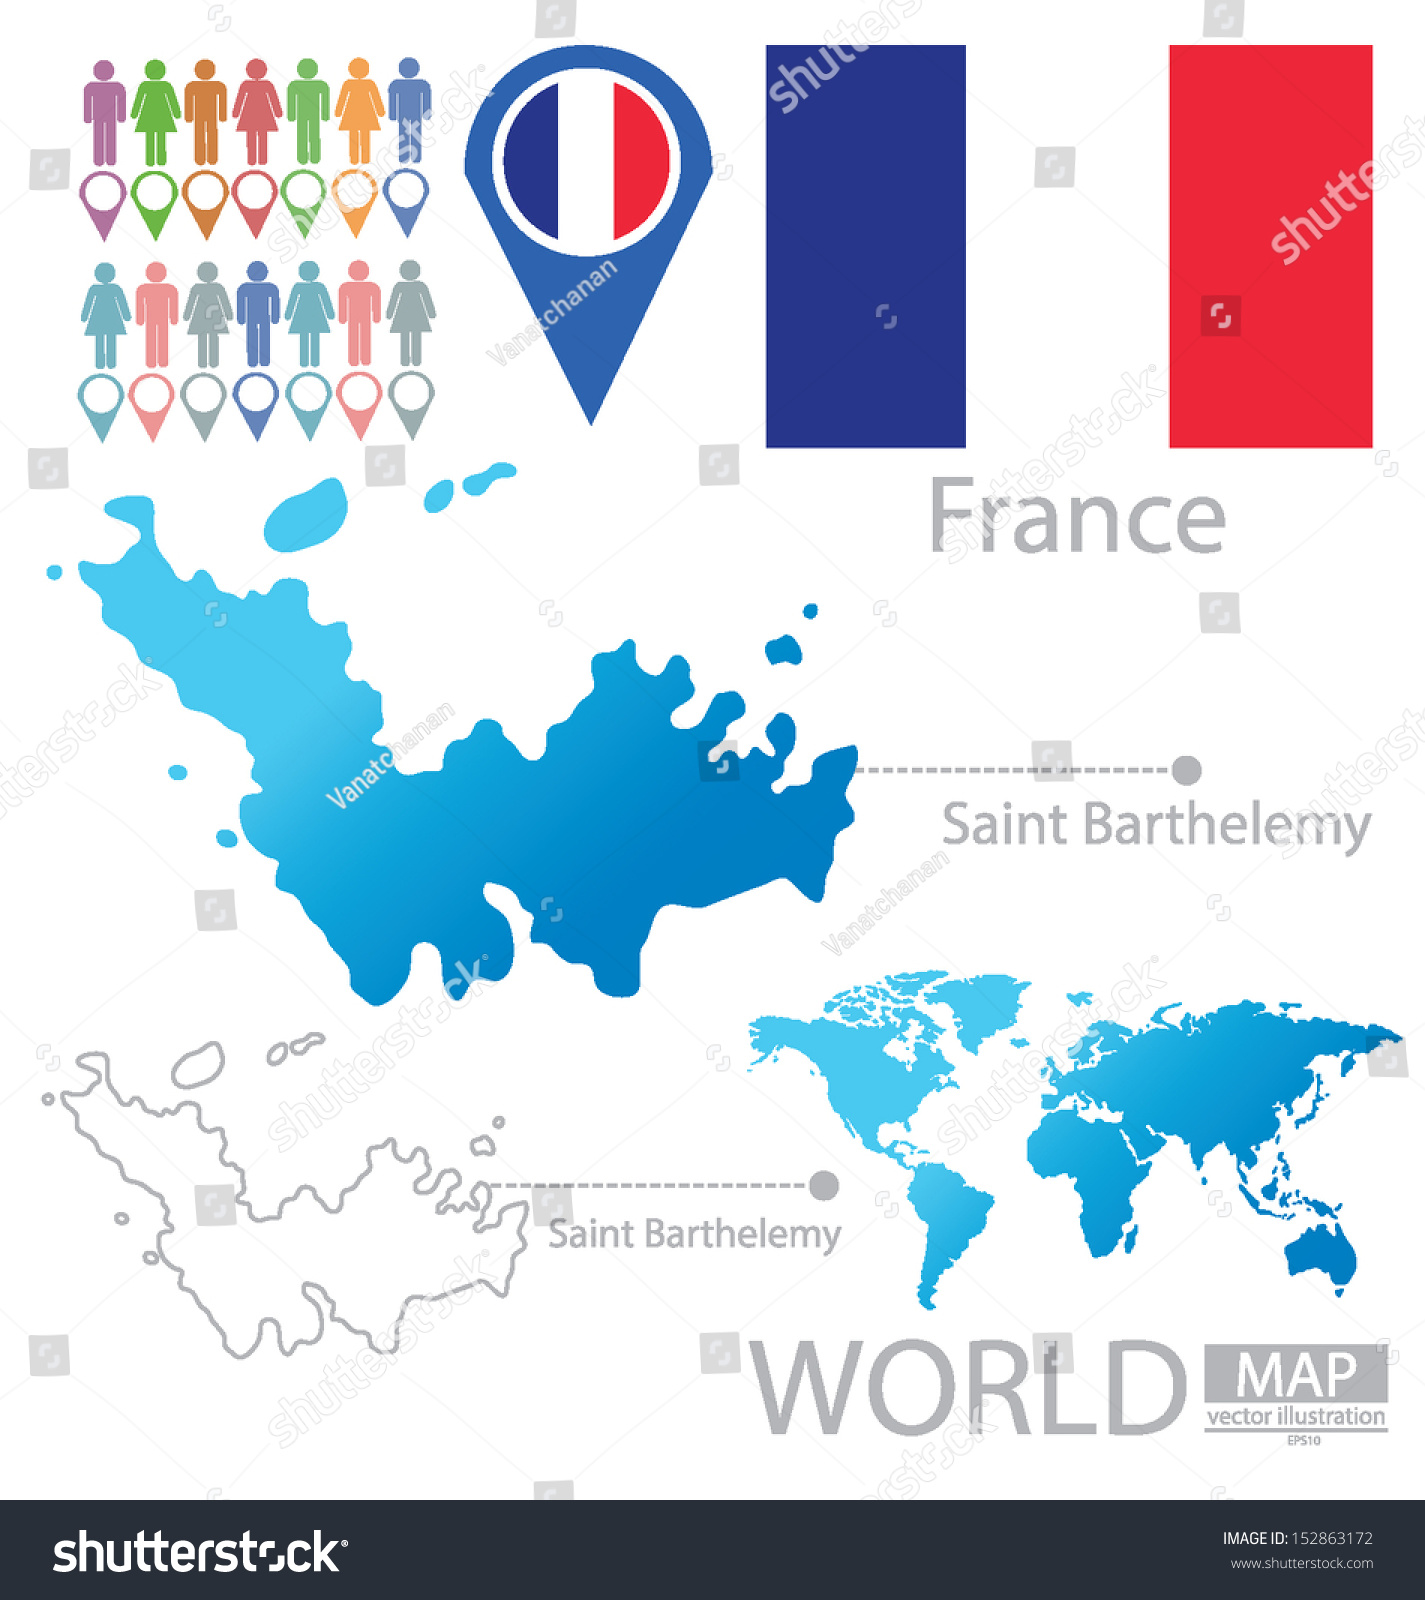 Saint barthelemy france flag world map vectores en stock 152863172 saint barthelemy france flag world map vector illustration gumiabroncs Image collections